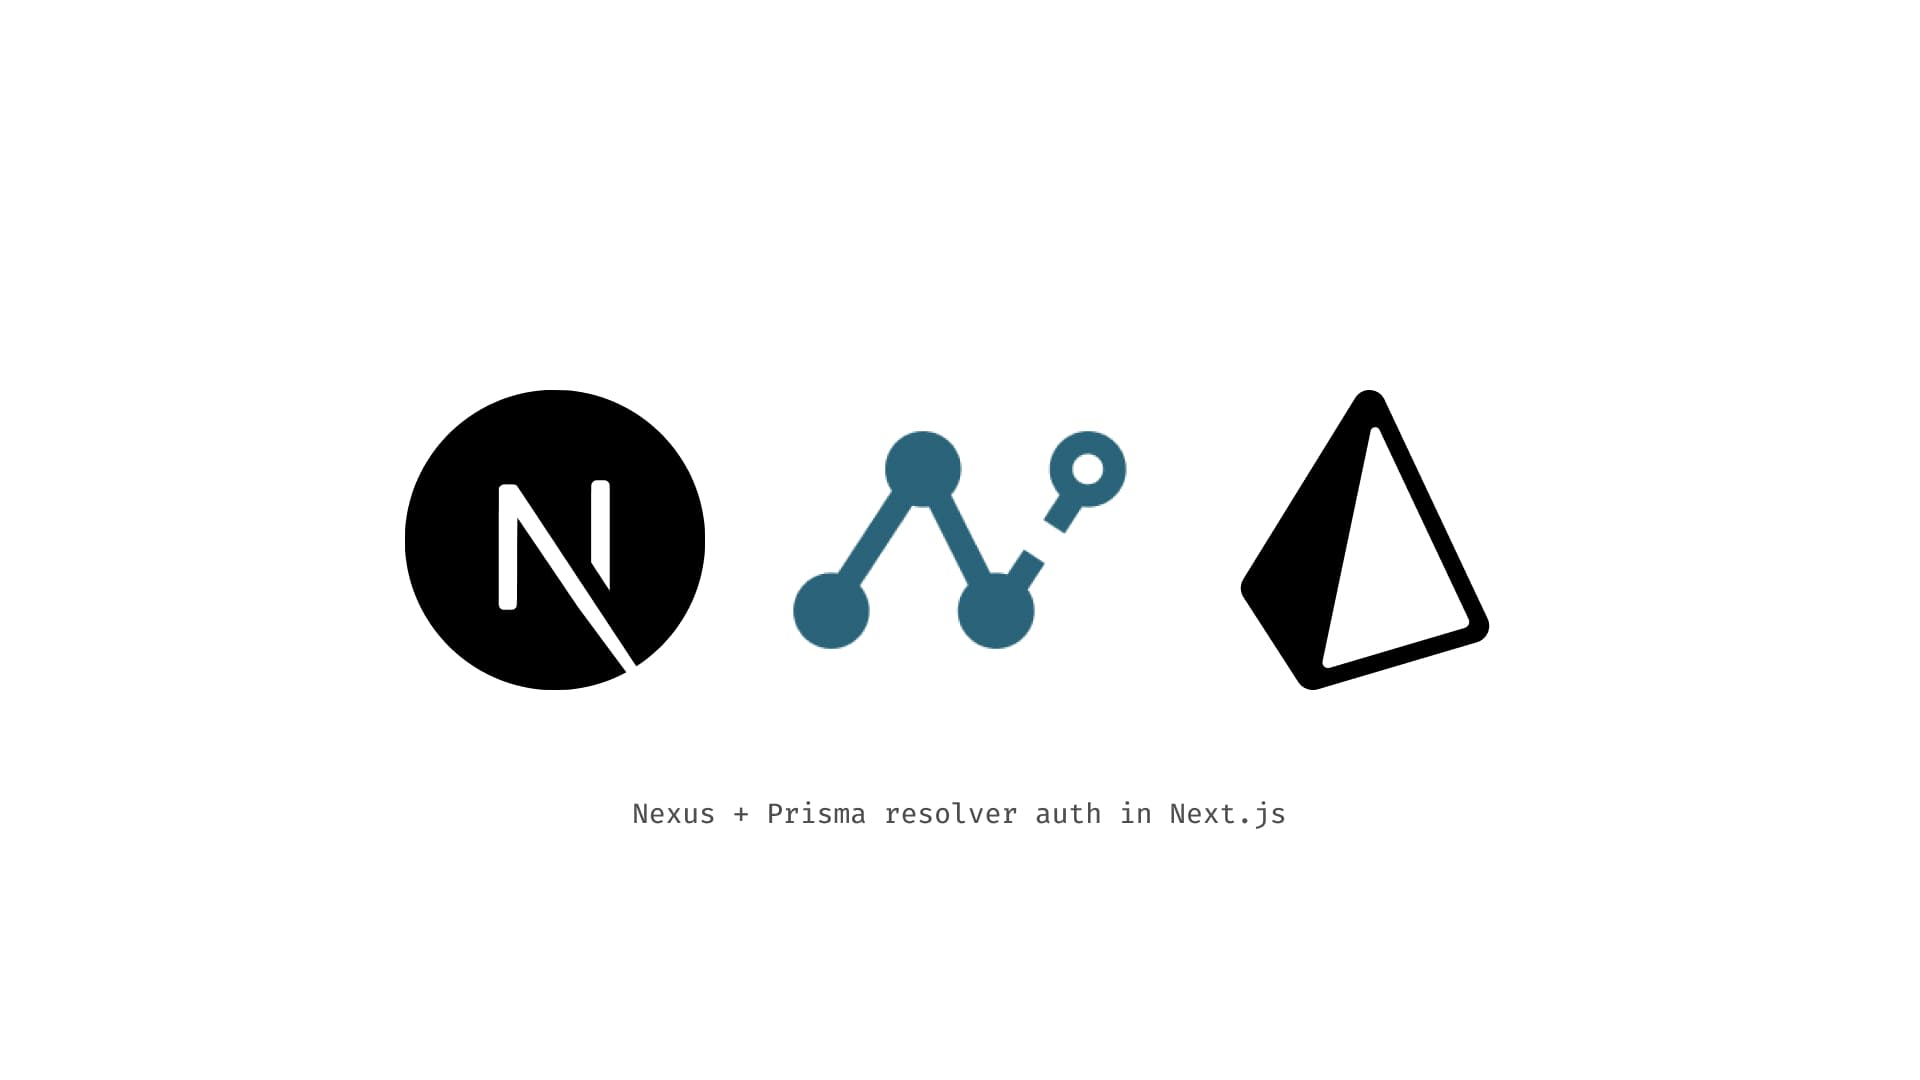 Nexus + Prisma resolver auth in Next.js